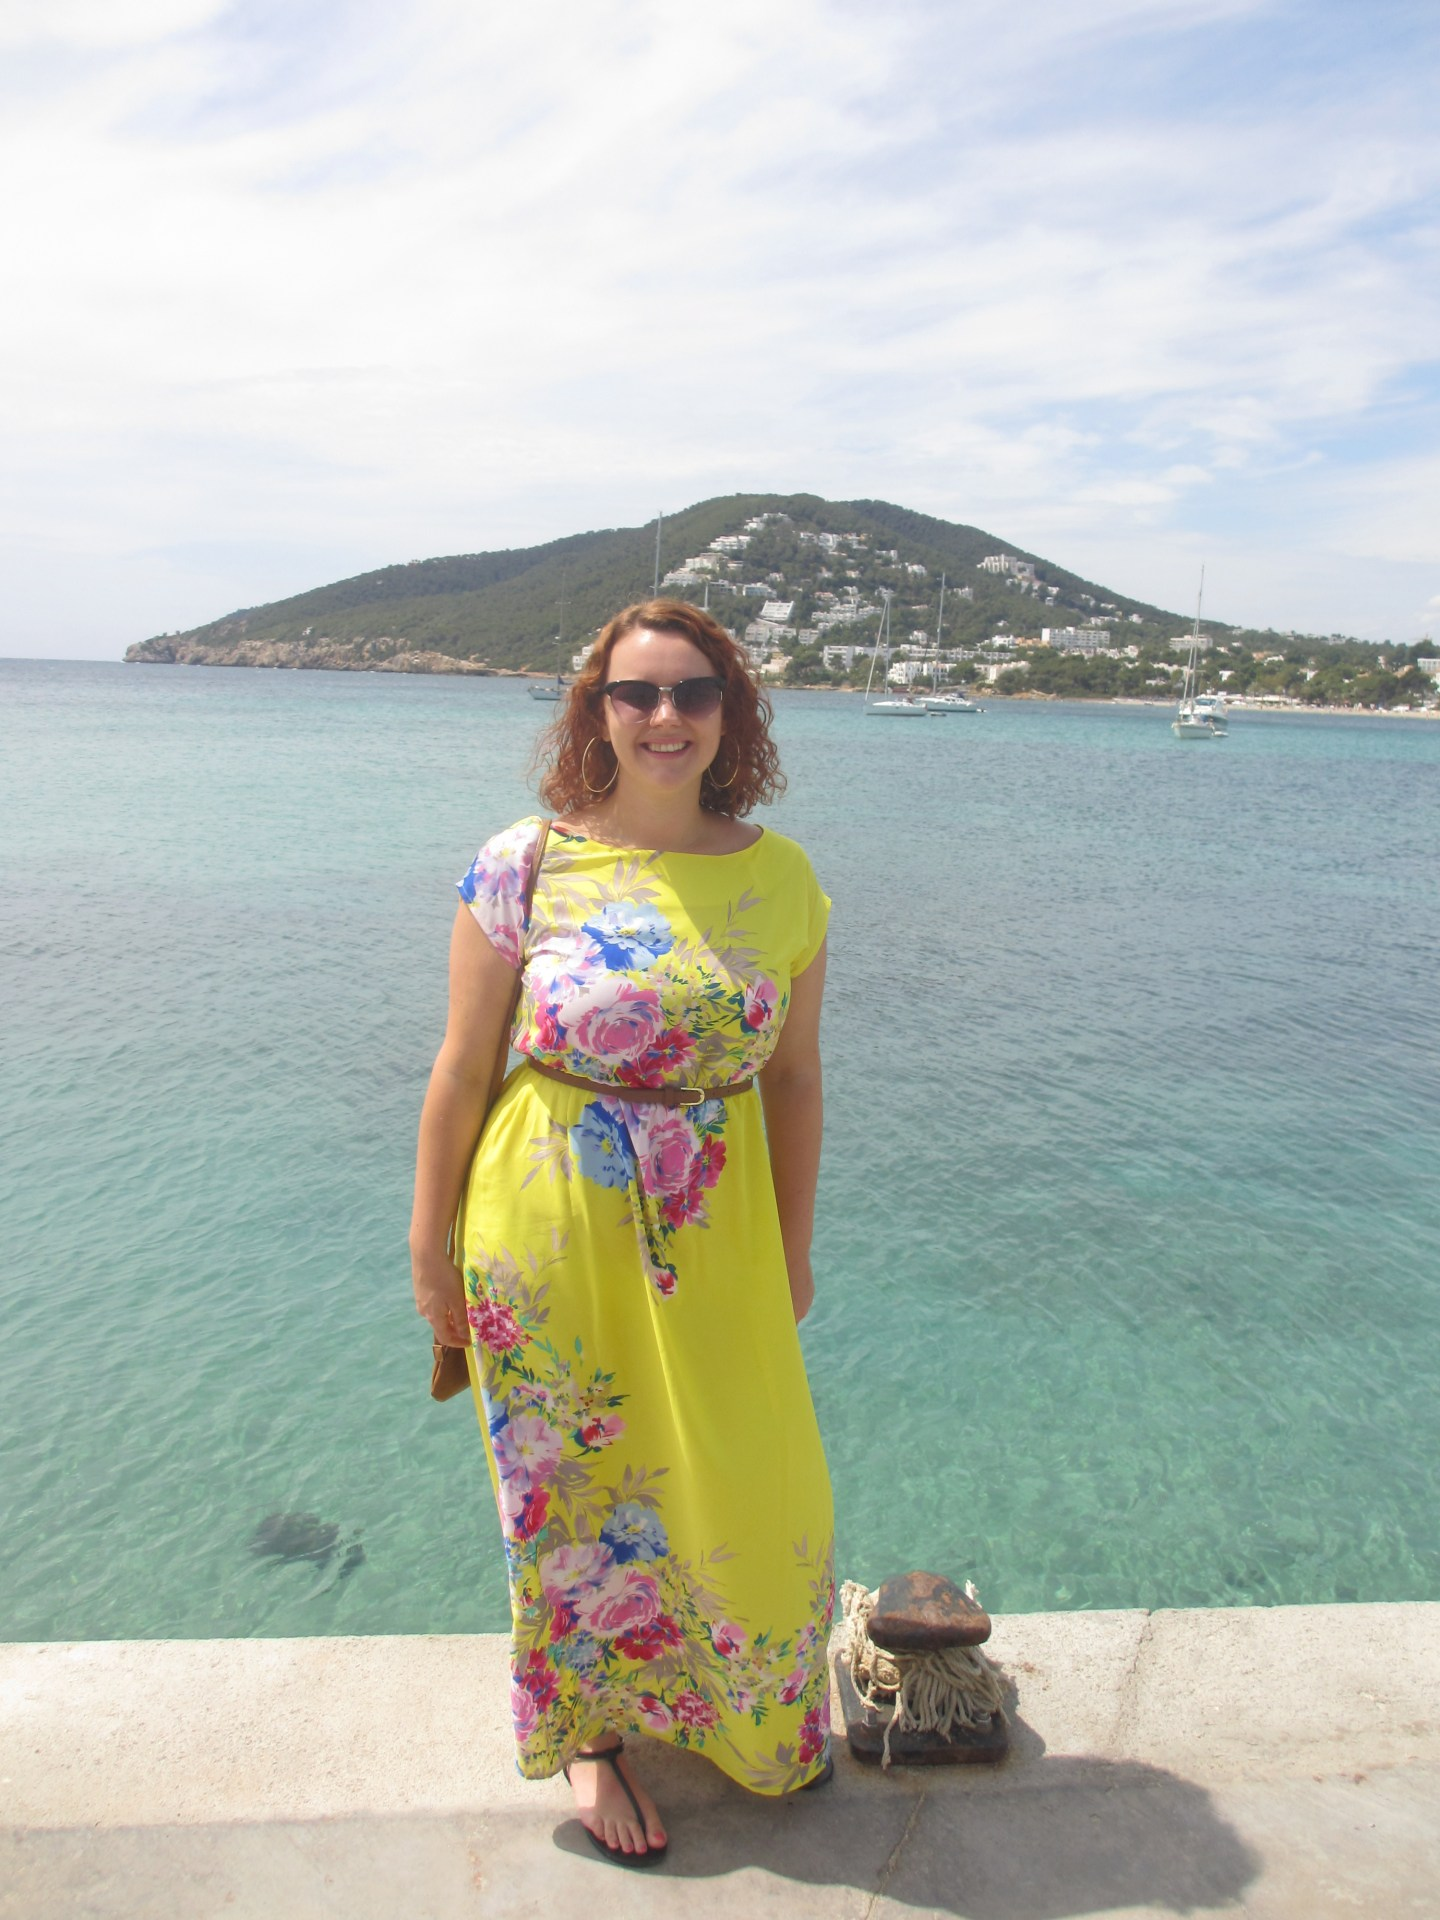 Perri - Blog writer at Seeking the Spanish Sun